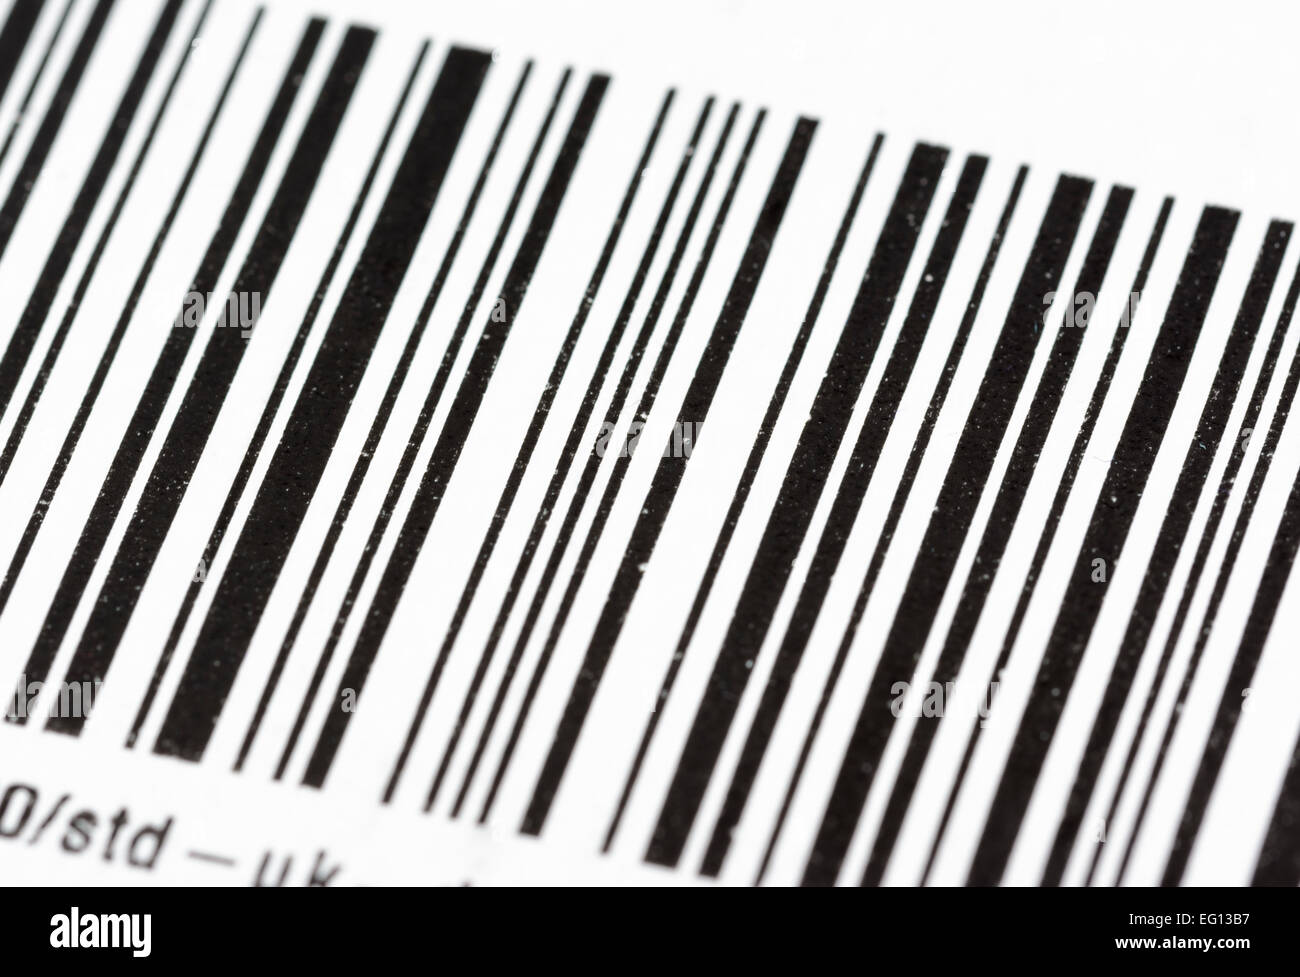 Barcode label on paper at a slight angle. - Stock Image